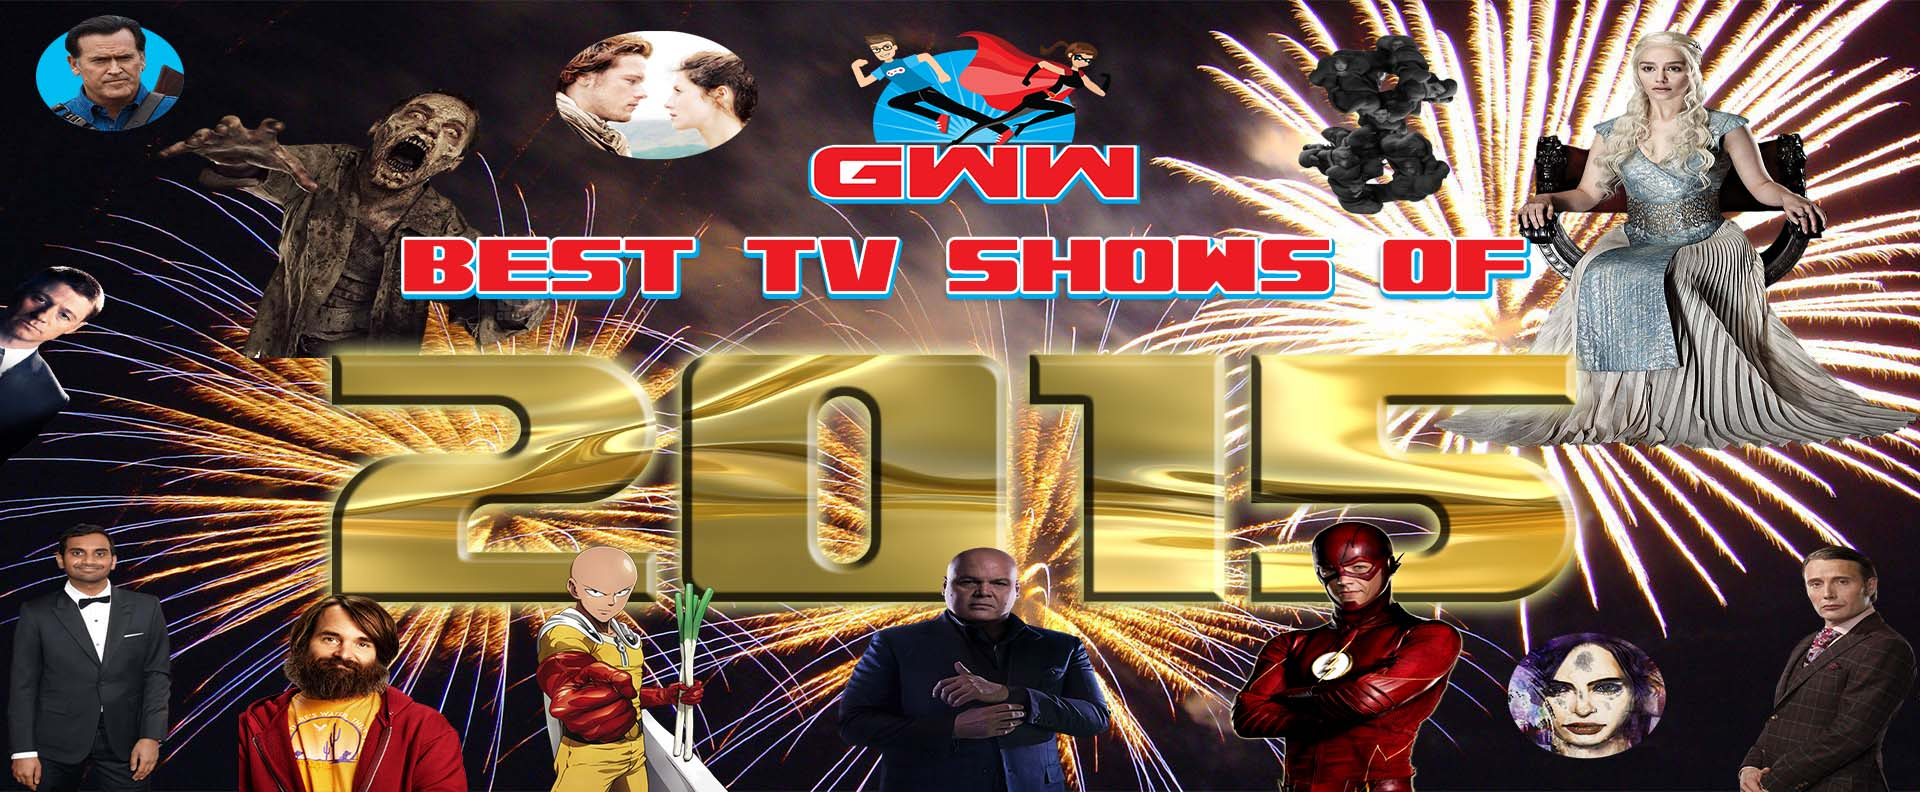 GWW's Best TV Shows of 2015!